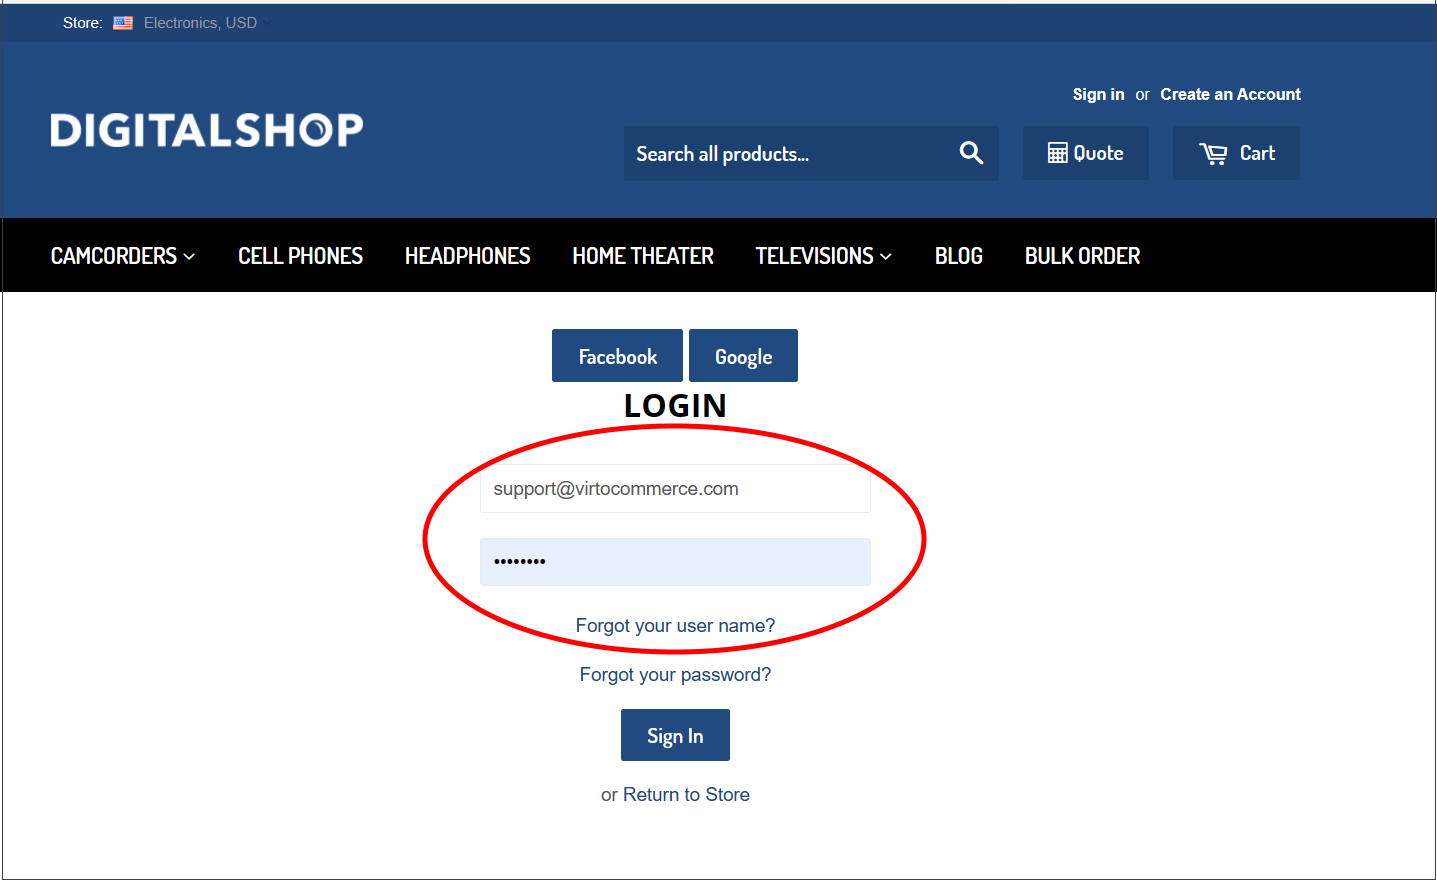 Fig.4. Re-enter login and password.